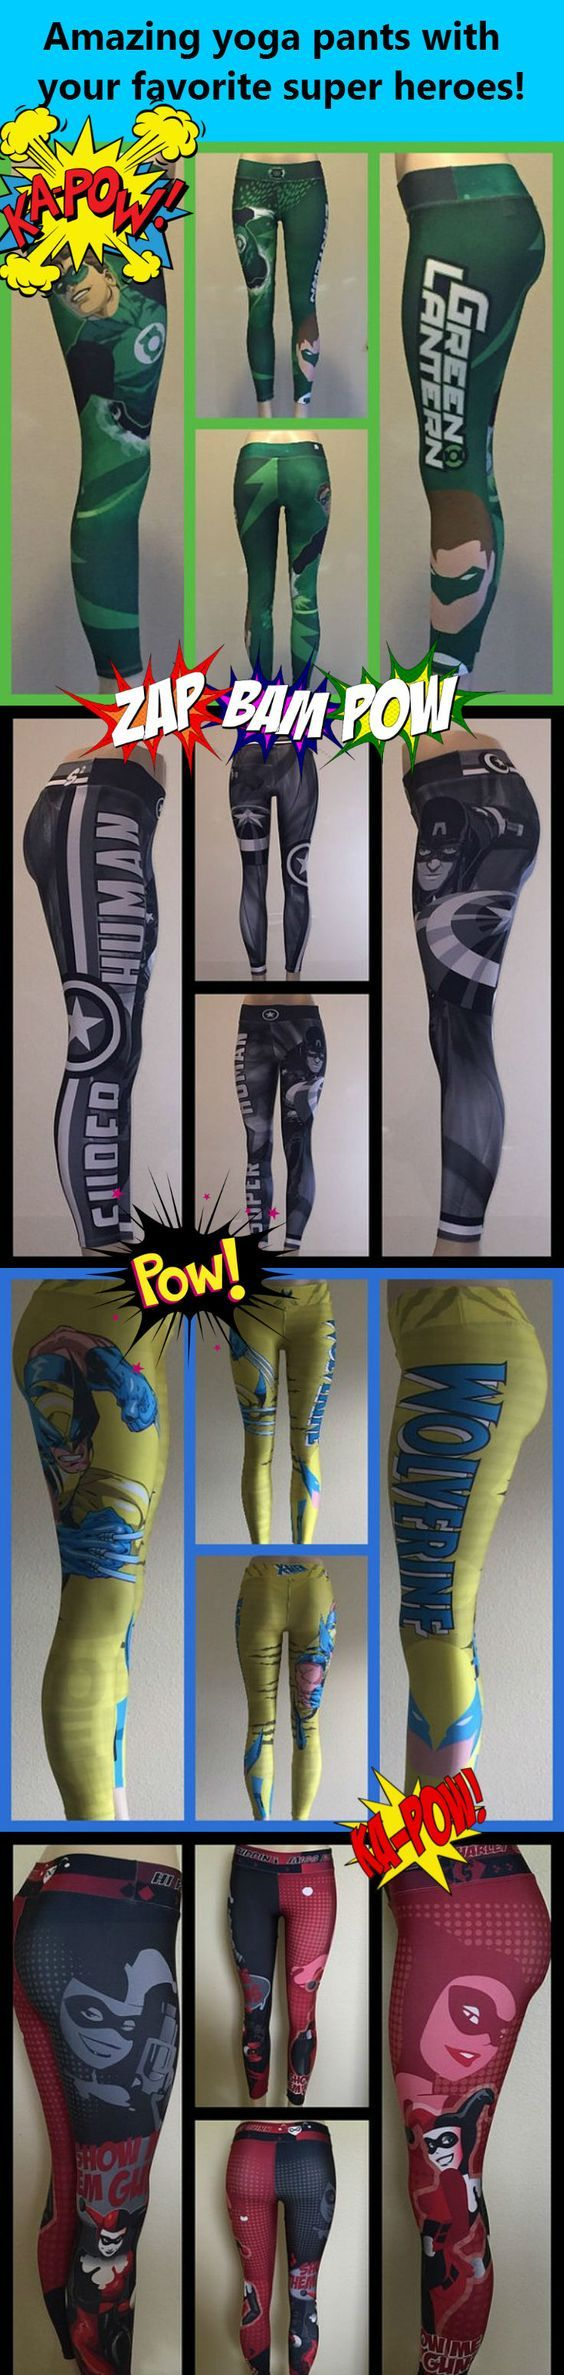 Super high quality leggings and yoga pants with all of your favorite super heroes Green Lantern, Harley Quinn, Superman, Spider-Man, Batman, Wonder Woman, The Hulk, Wolverine, Captain America, Deadpool and more!